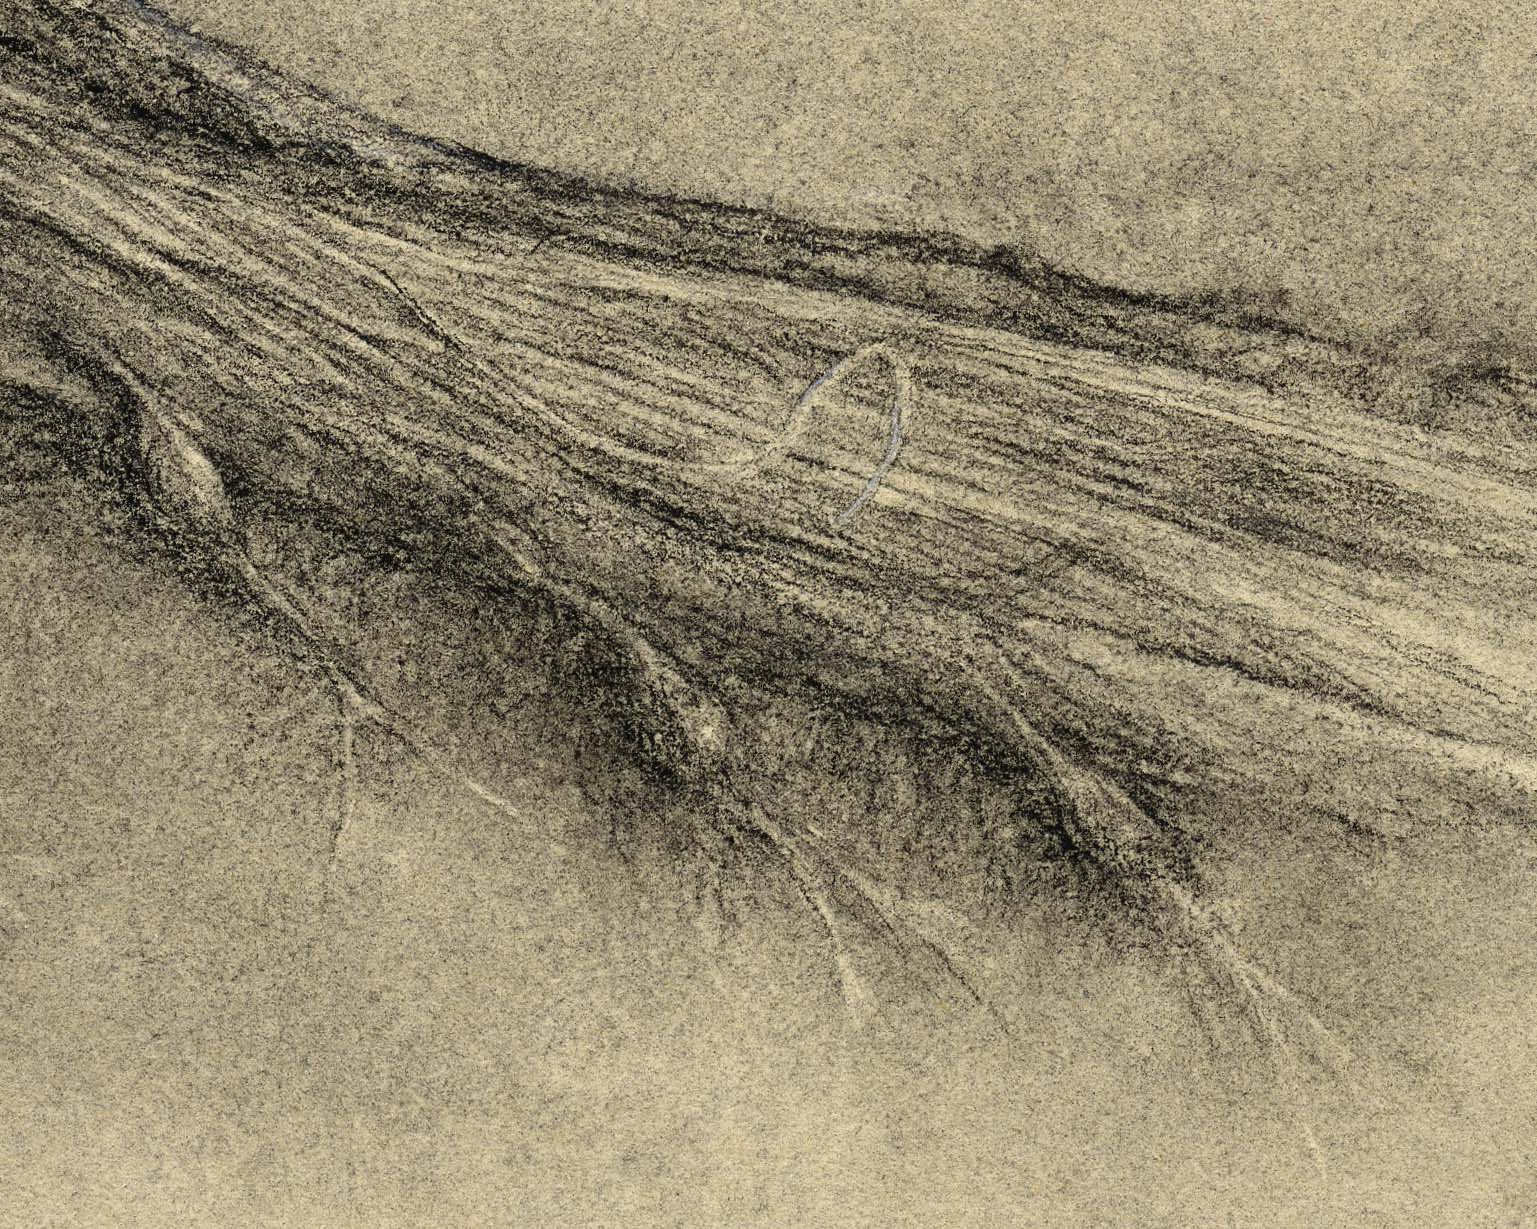 Spinal cord (cauda equina) with nerve roots (large detail)